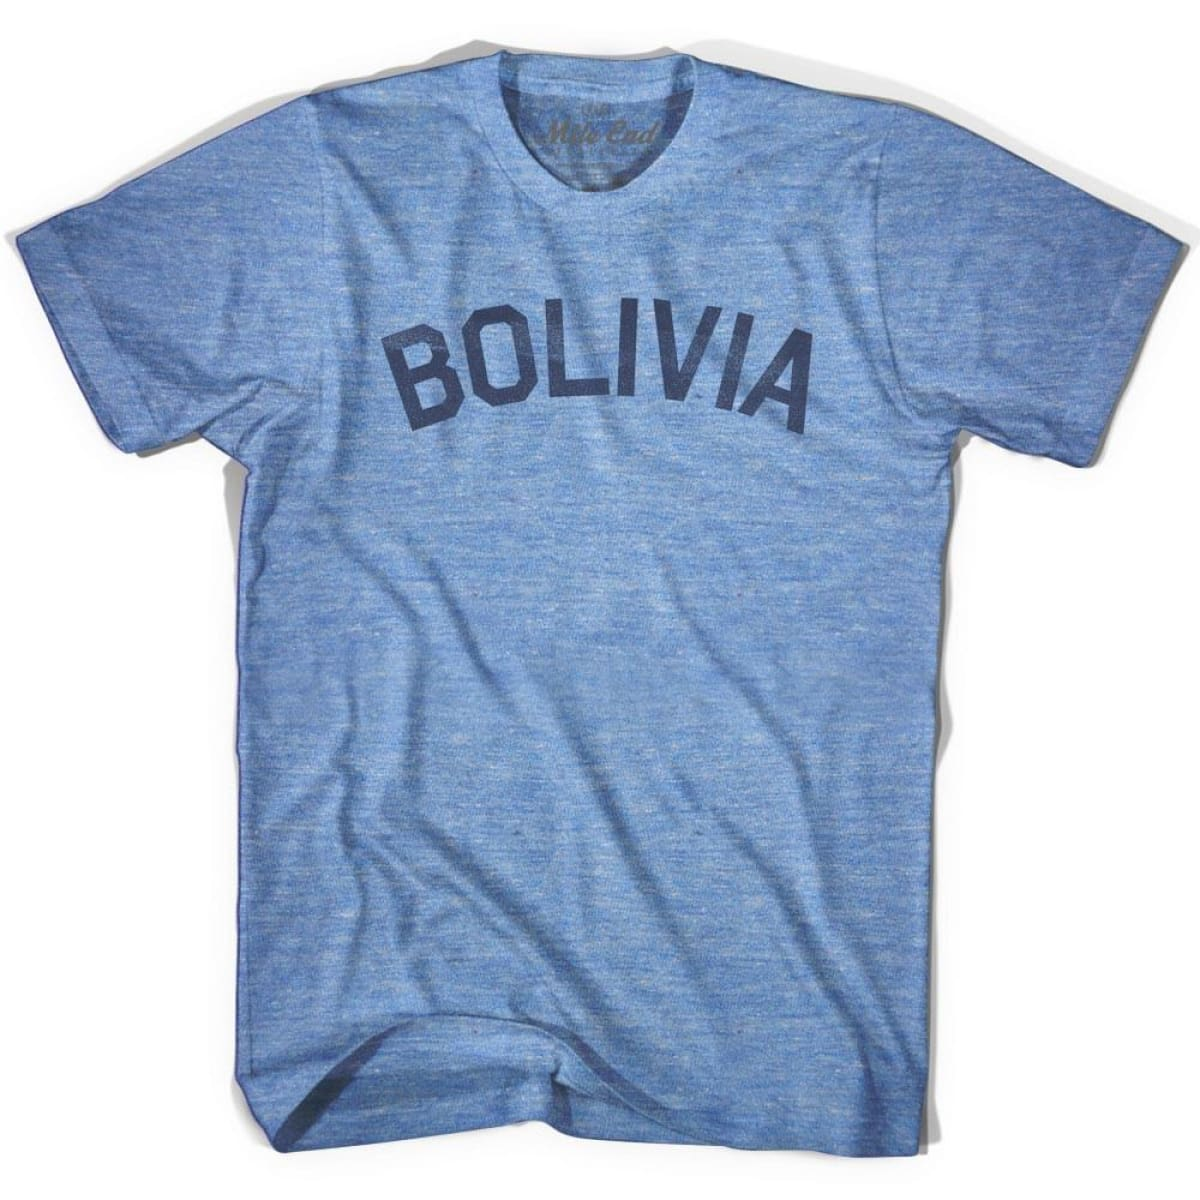 Bolivia City Vintage T-shirt - Athletic Blue / Adult X-Small - Mile End City